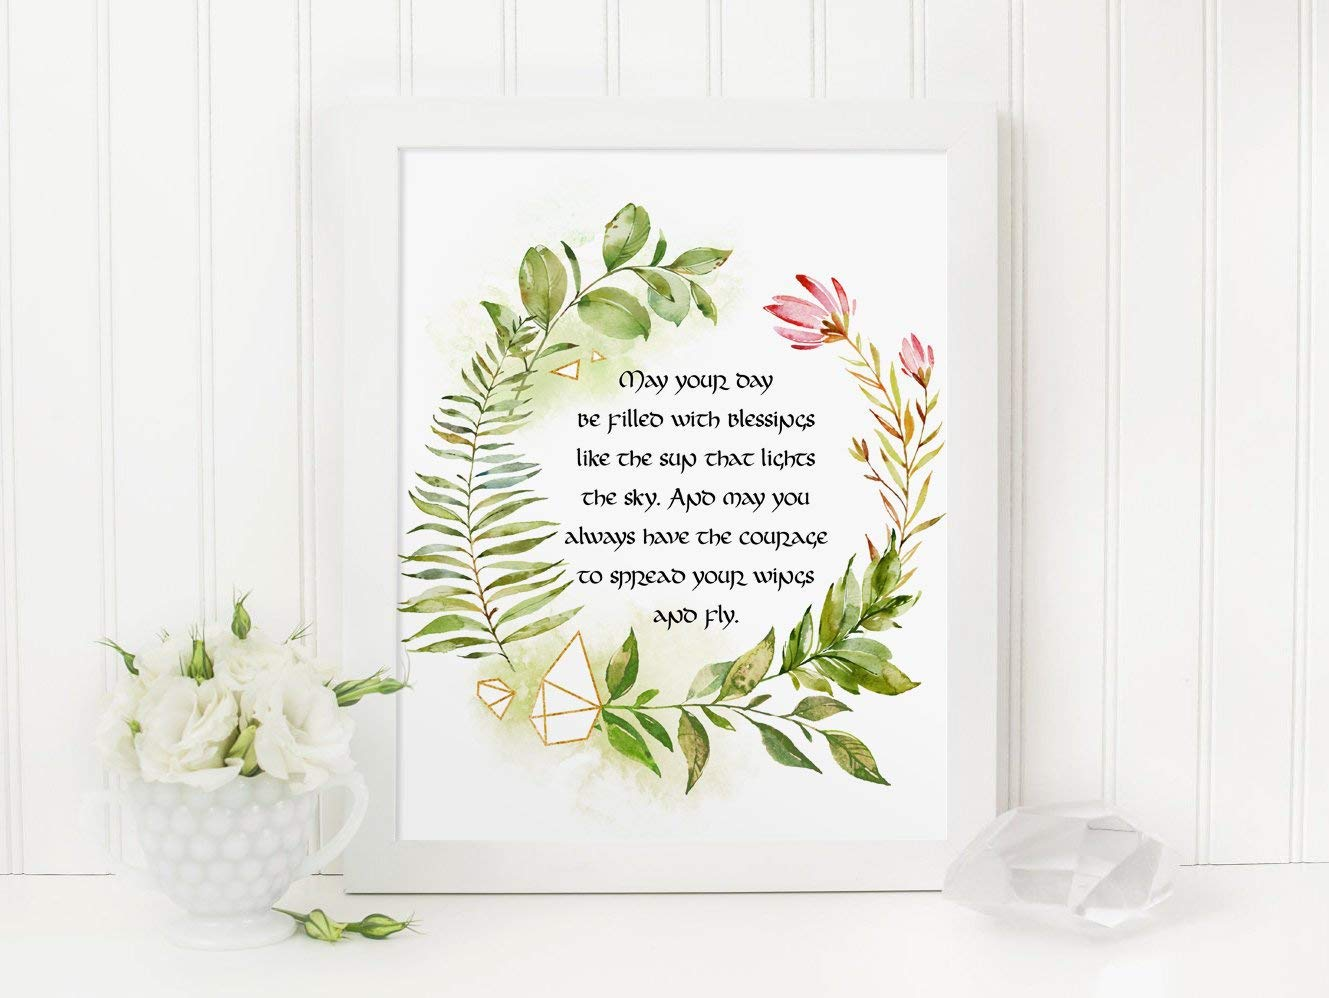 photograph relating to Printable Irish Blessing known as : MalertaART Irish Blessing Printable Might Your Working day